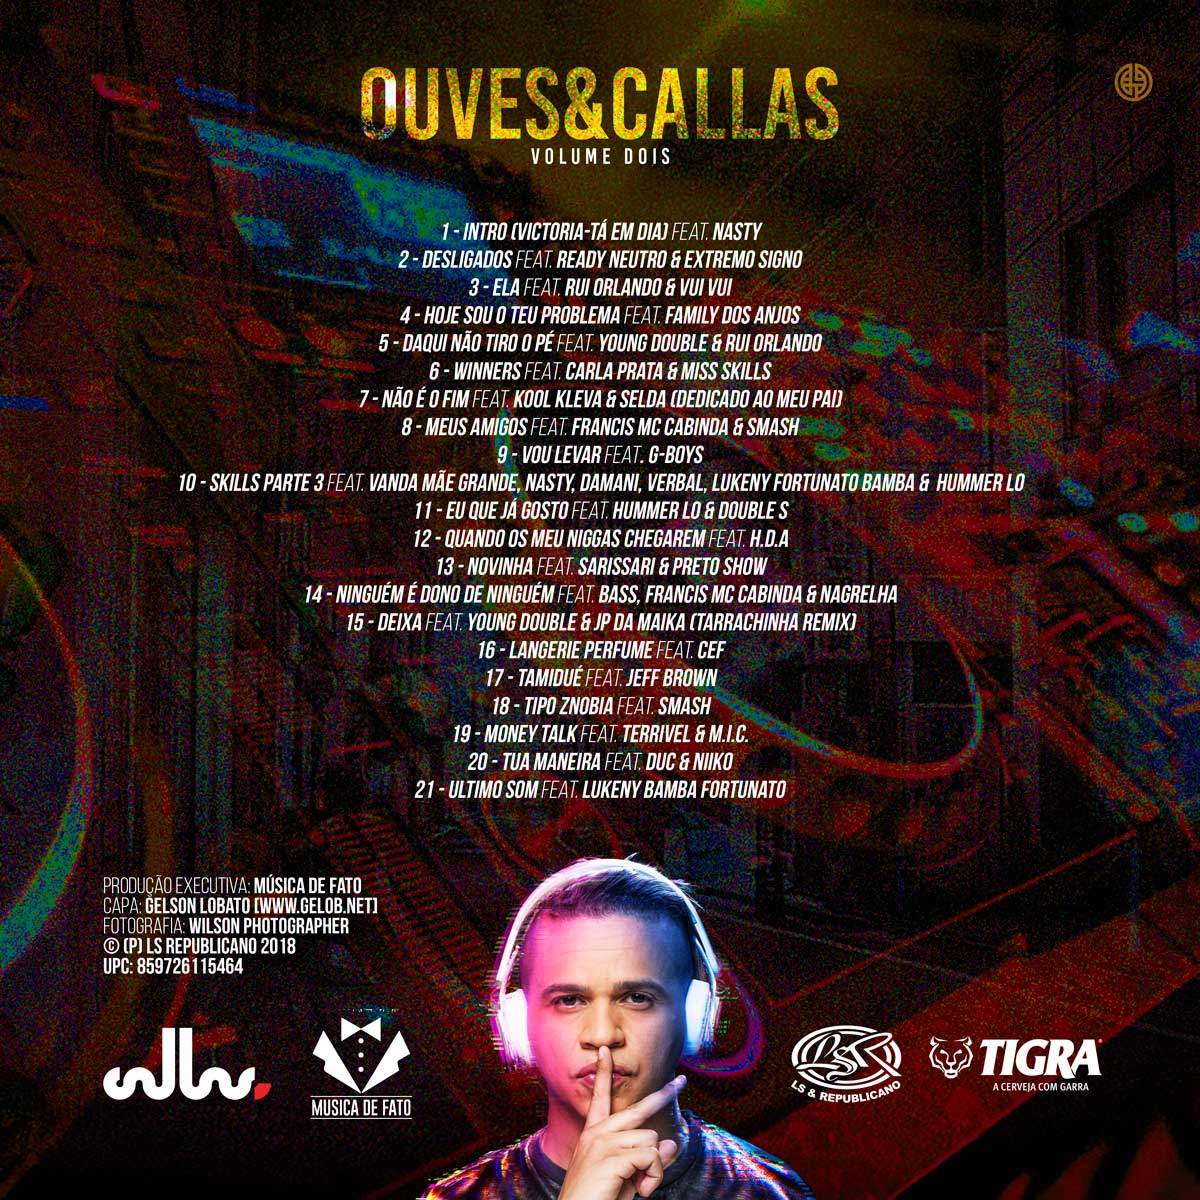 2019 St Dj Songs Dowode 4 33 Mb: Ouves E Callas Vol. 2 (Álbum Completo) 2018